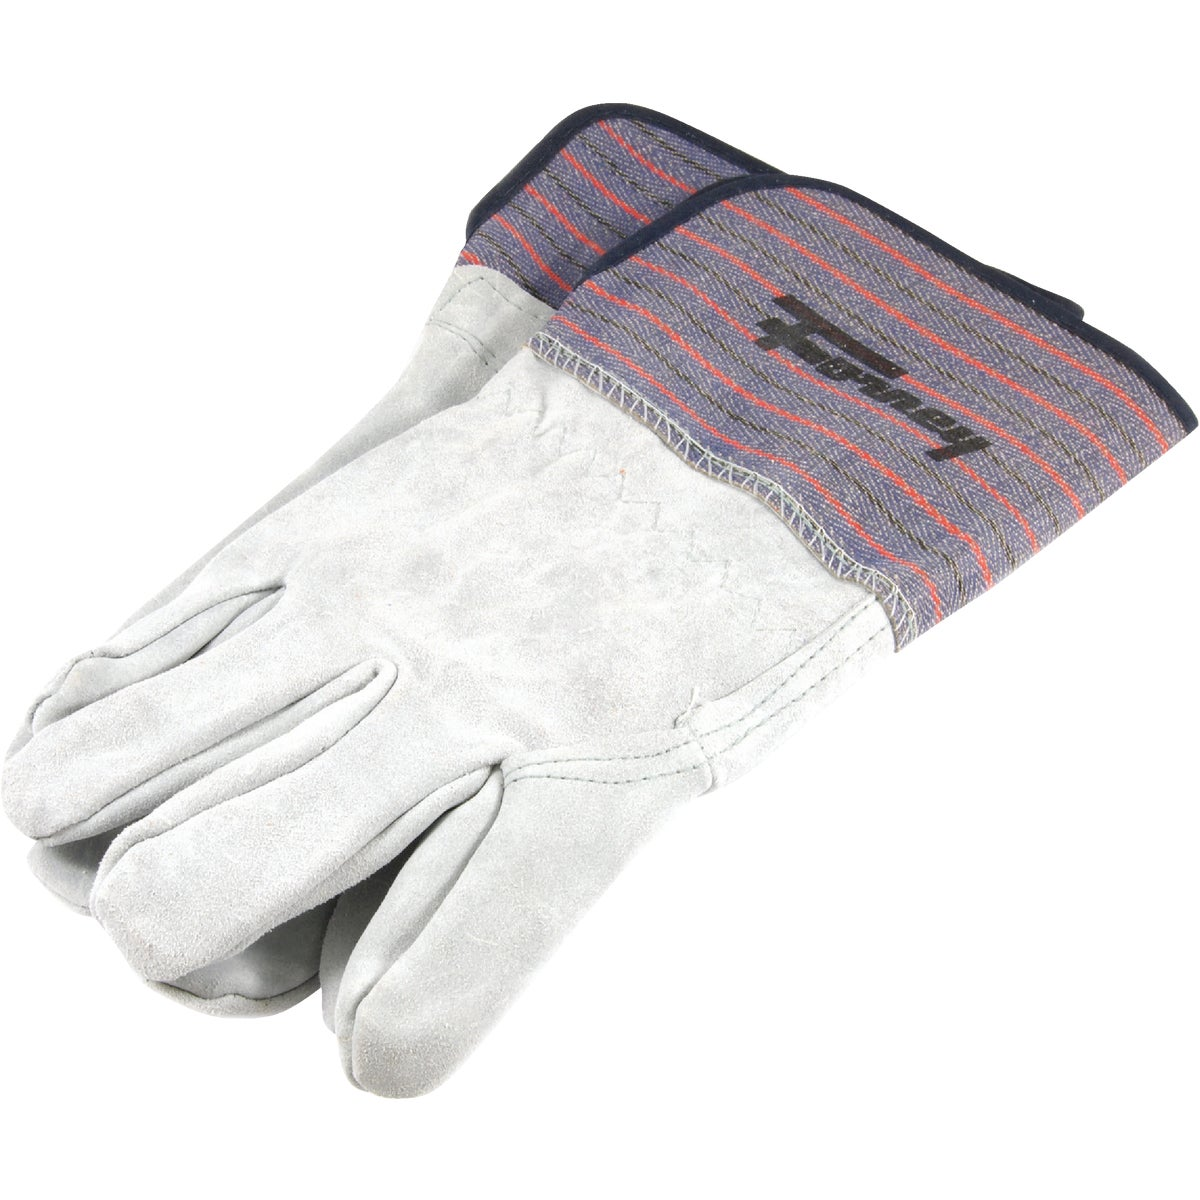 LRG WELDING GLOVES - 55199 by Forney Industries